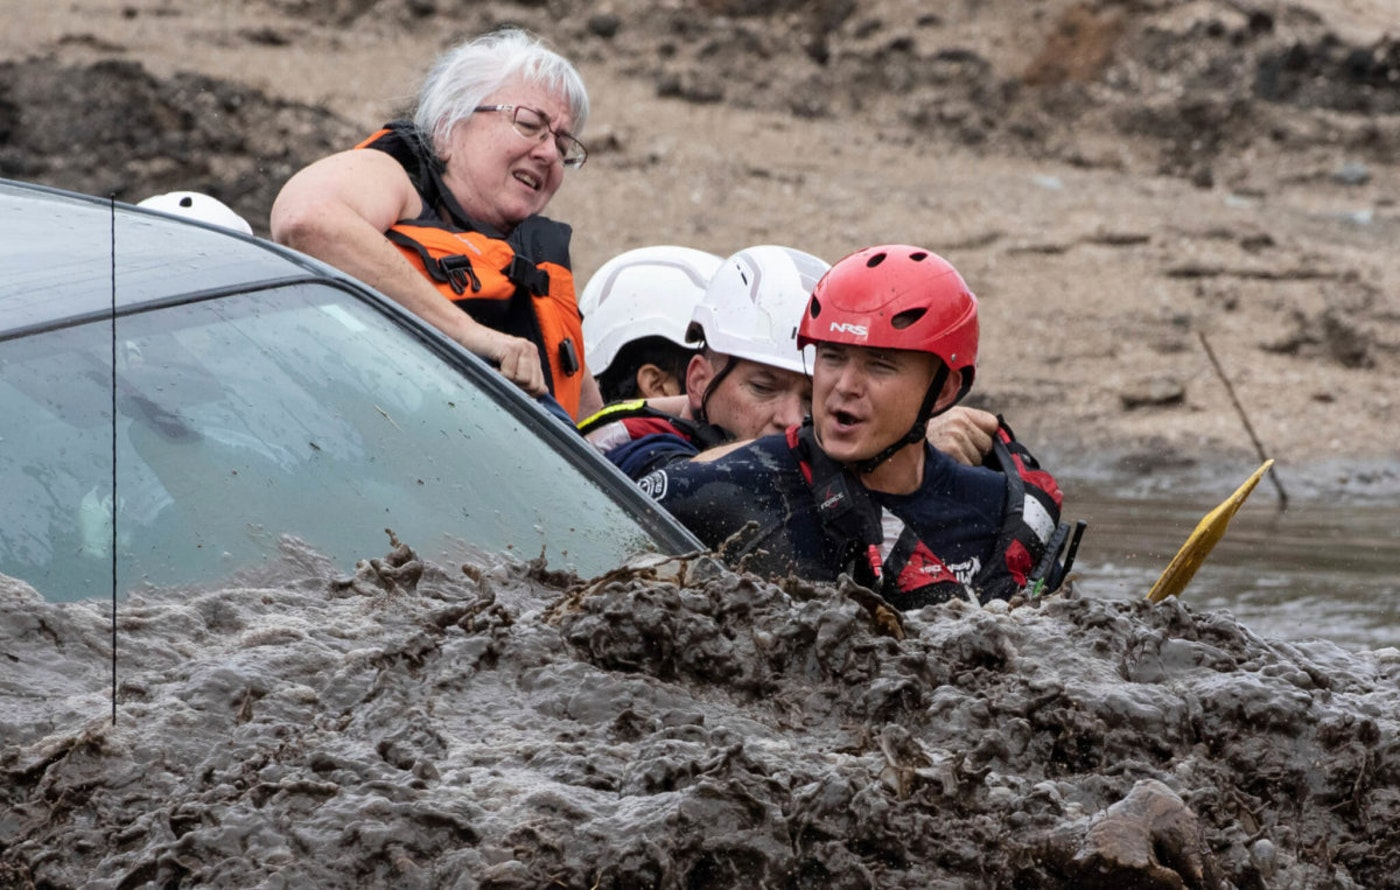 a woman halfway out of a car as three rescuers pull her out amid flood waters